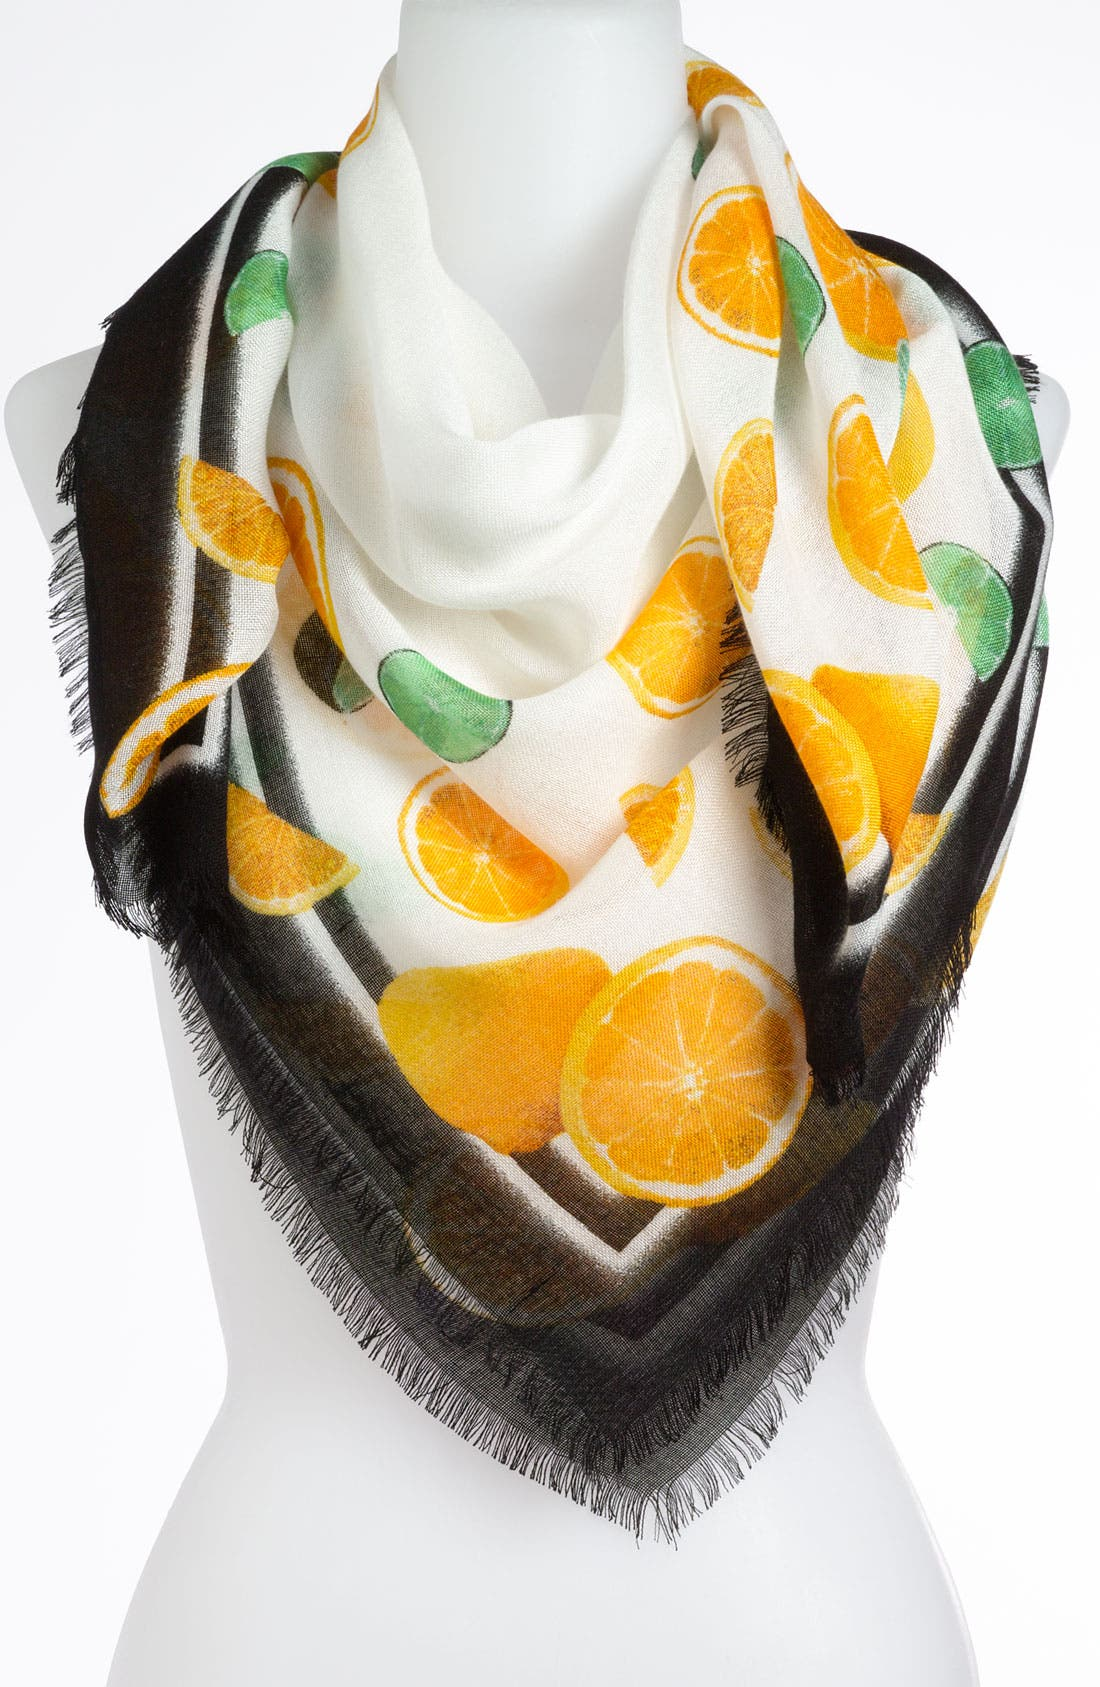 Alternate Image 1 Selected - Tarnish 'Fruit Medley' Scarf